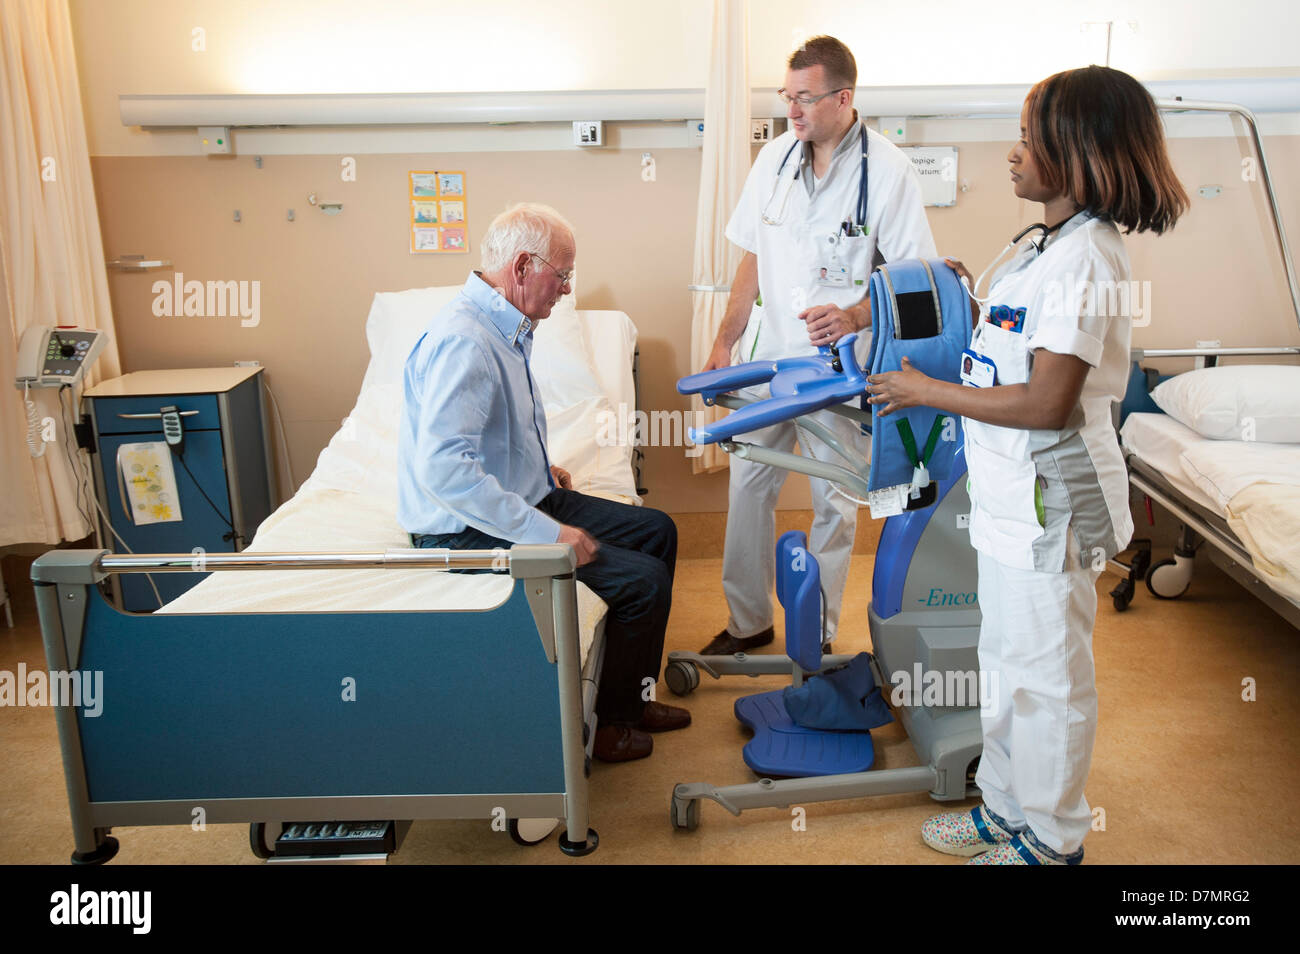 Nurses helping a patient out of bed - Stock Image